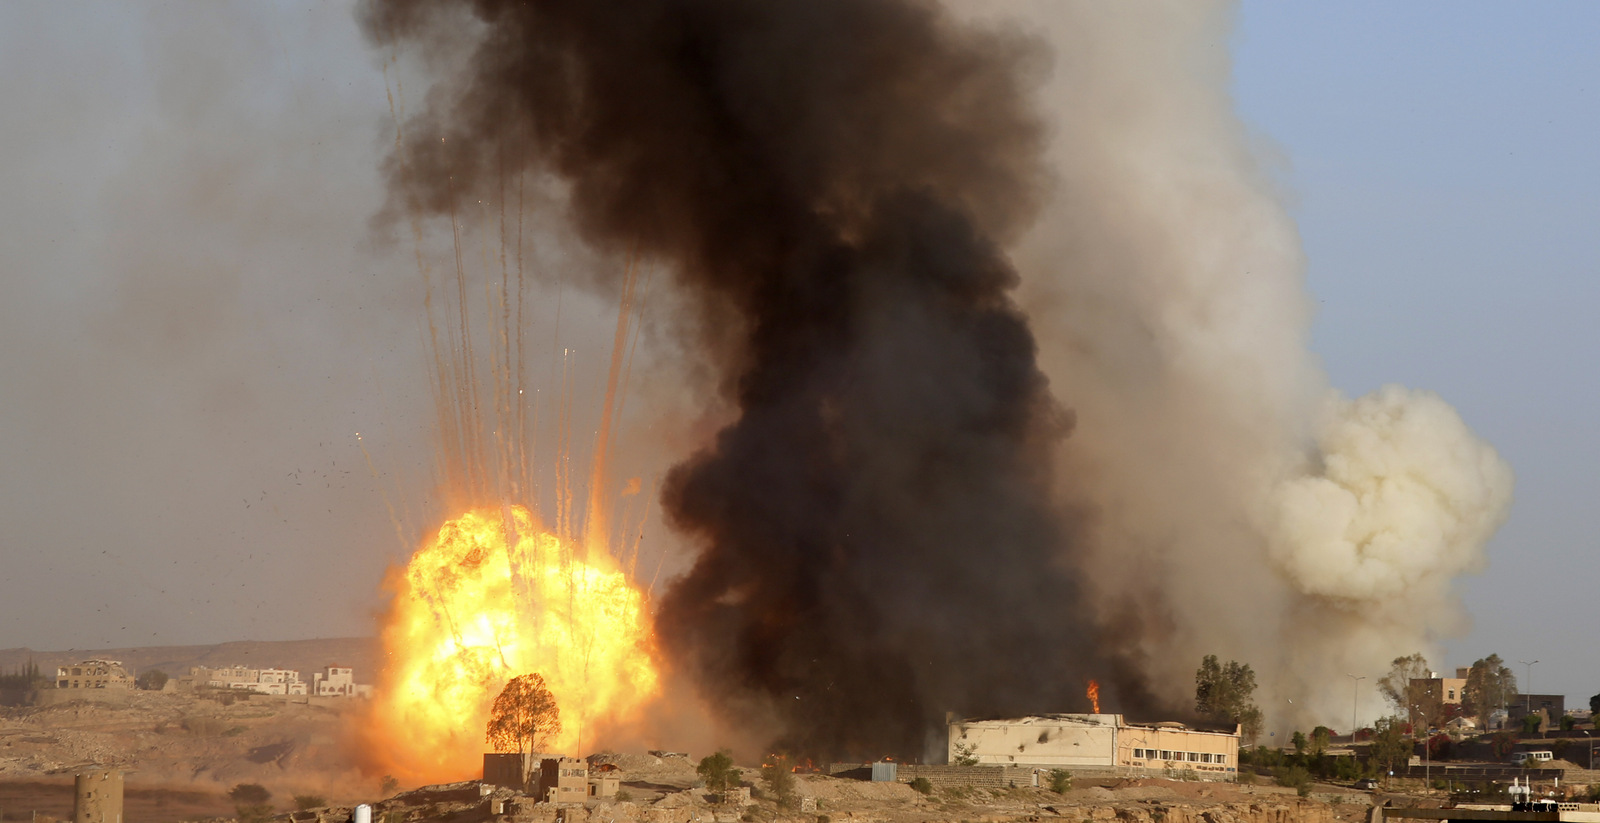 An explosion and smoke rise after an airstrike by the Saudi-led coalition in Sanaa, Yemen, Friday, Sept. 11, 2015. Saudi Arabia is leading a coalition of mainly Gulf nations fighting the Houthis, who seized the capital, Sanaa, last September. (AP Photo/Hani Mohammed)